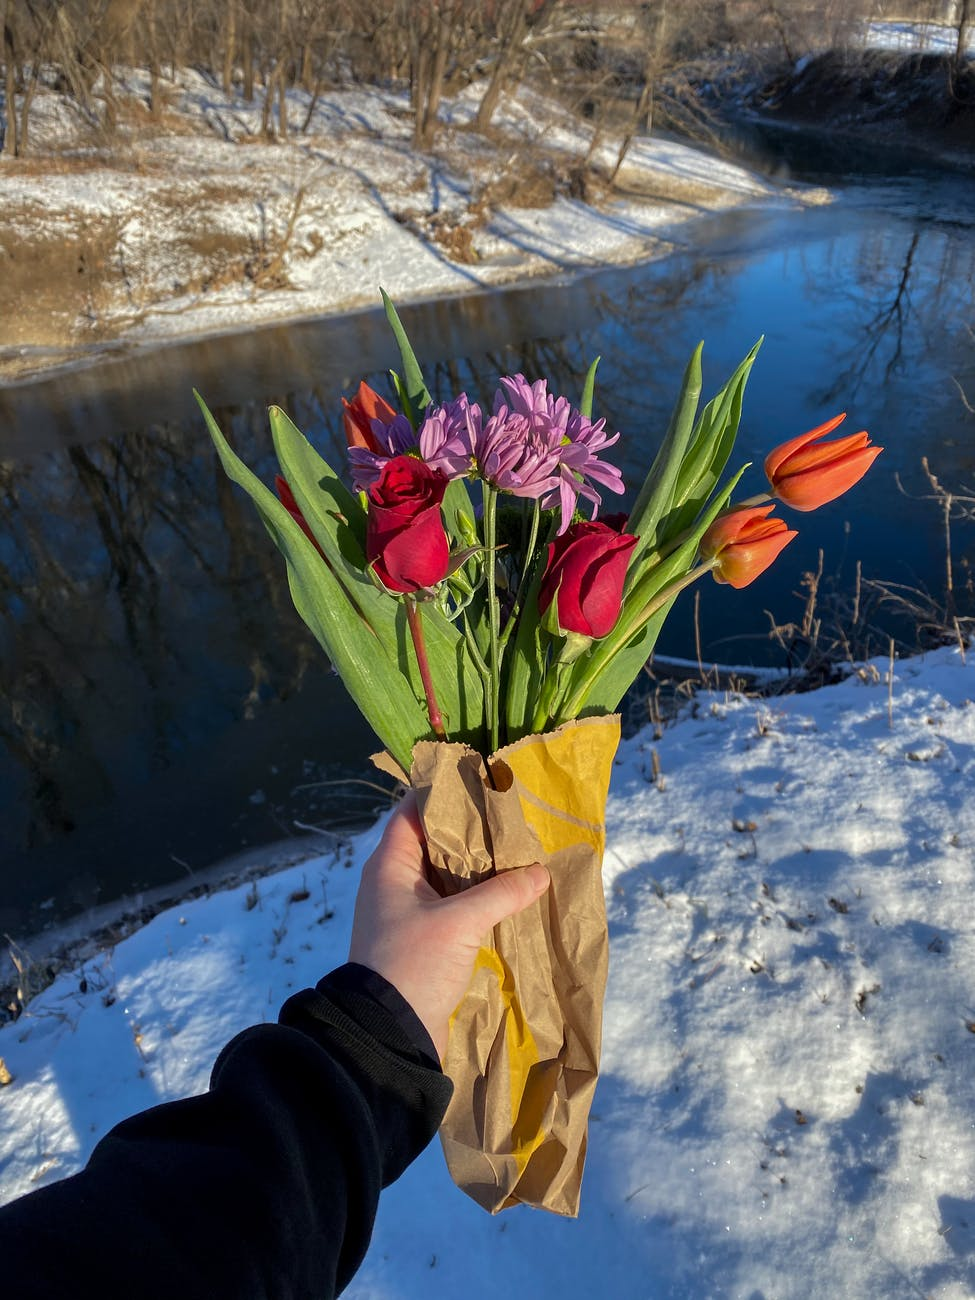 faceless person holding bouquet of fresh flowers on snowy river shore